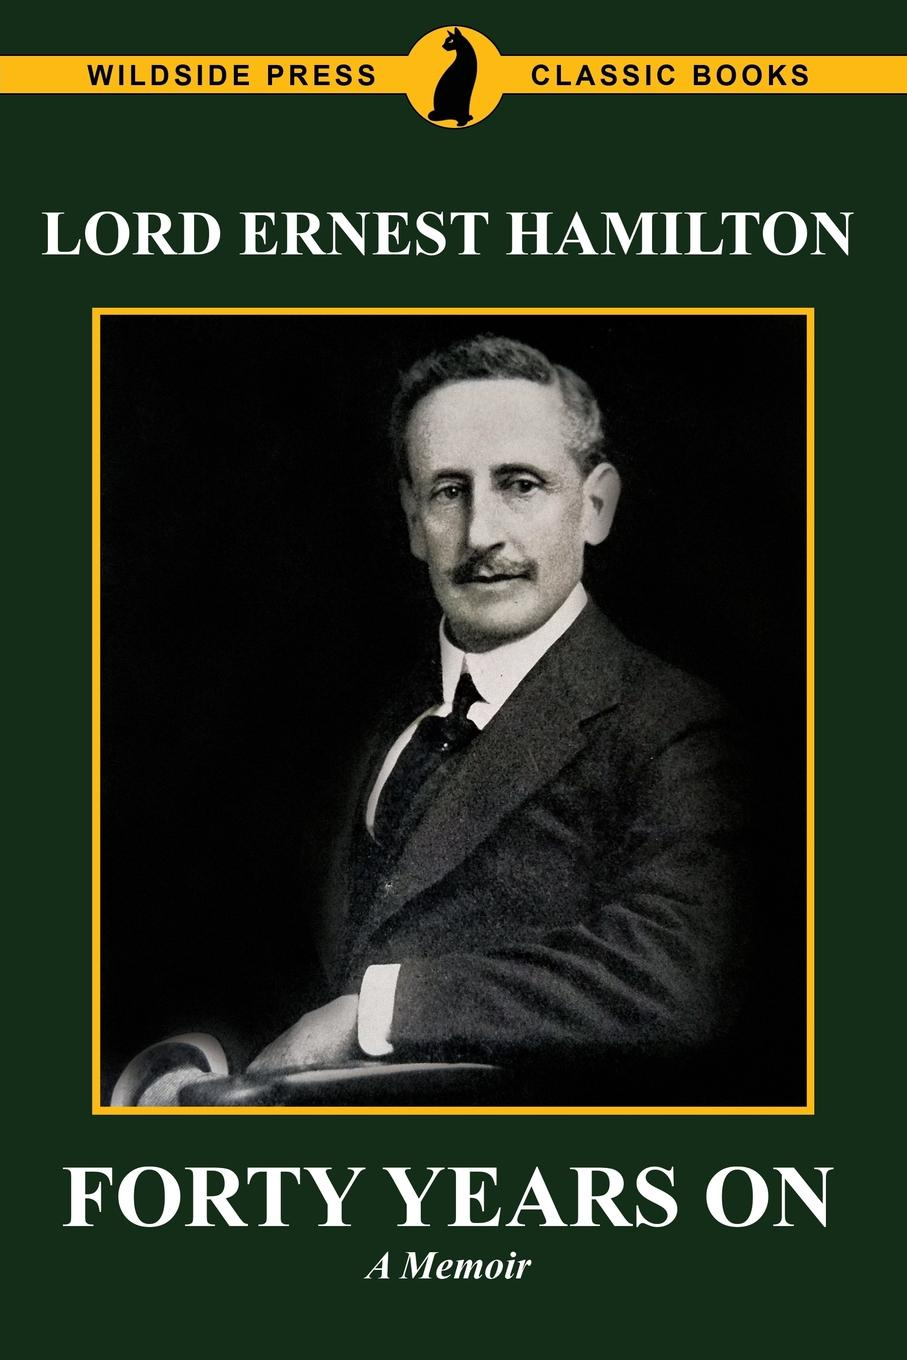 Lord Ernest Hamilton Forty Years On. The Memoirs of